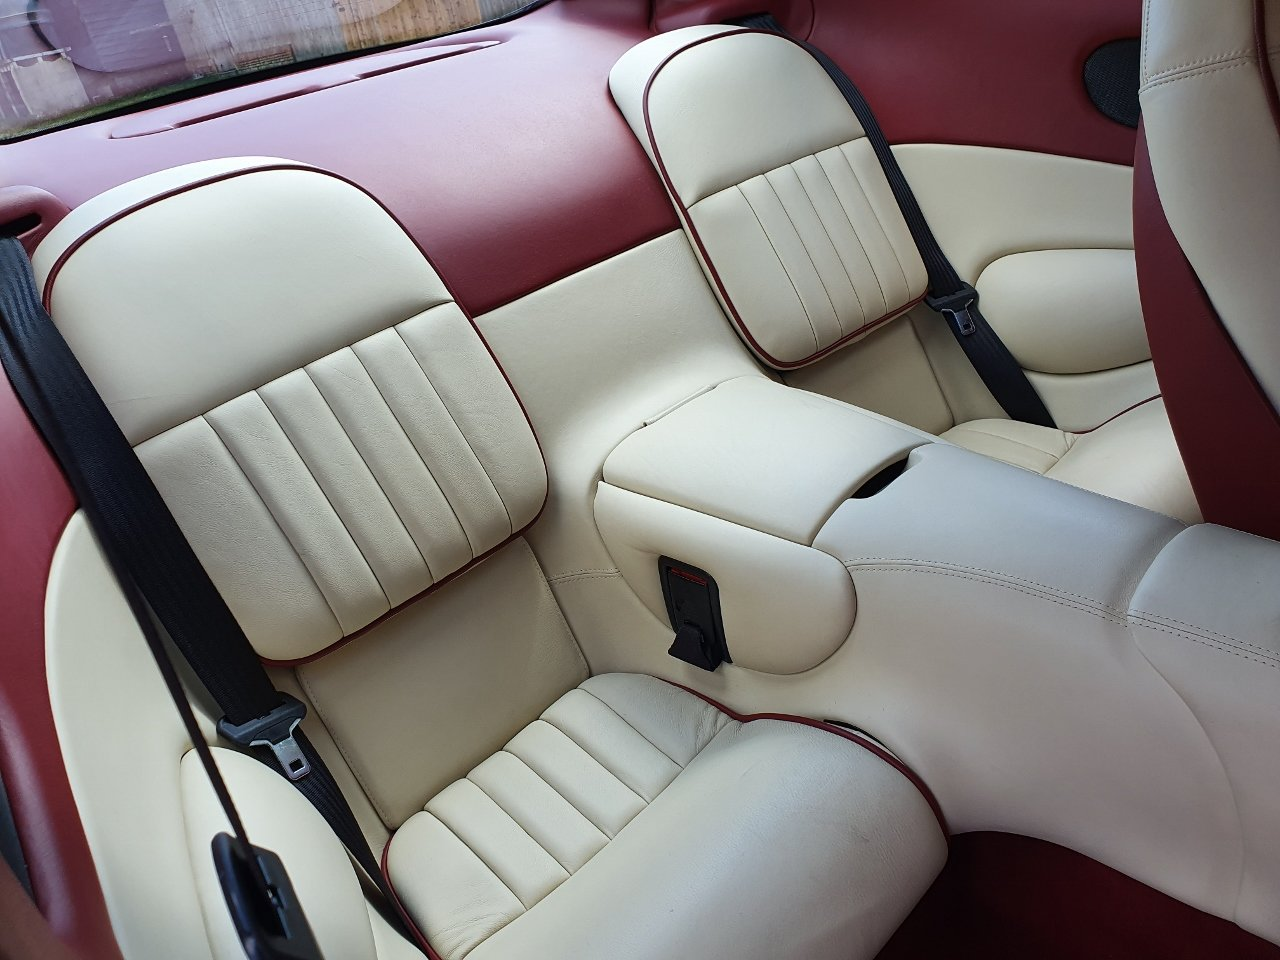 1998 ONLY 25,000 Miles - Pristine DB7 Auto - 3.2 Supercharged SOLD (picture 9 of 10)